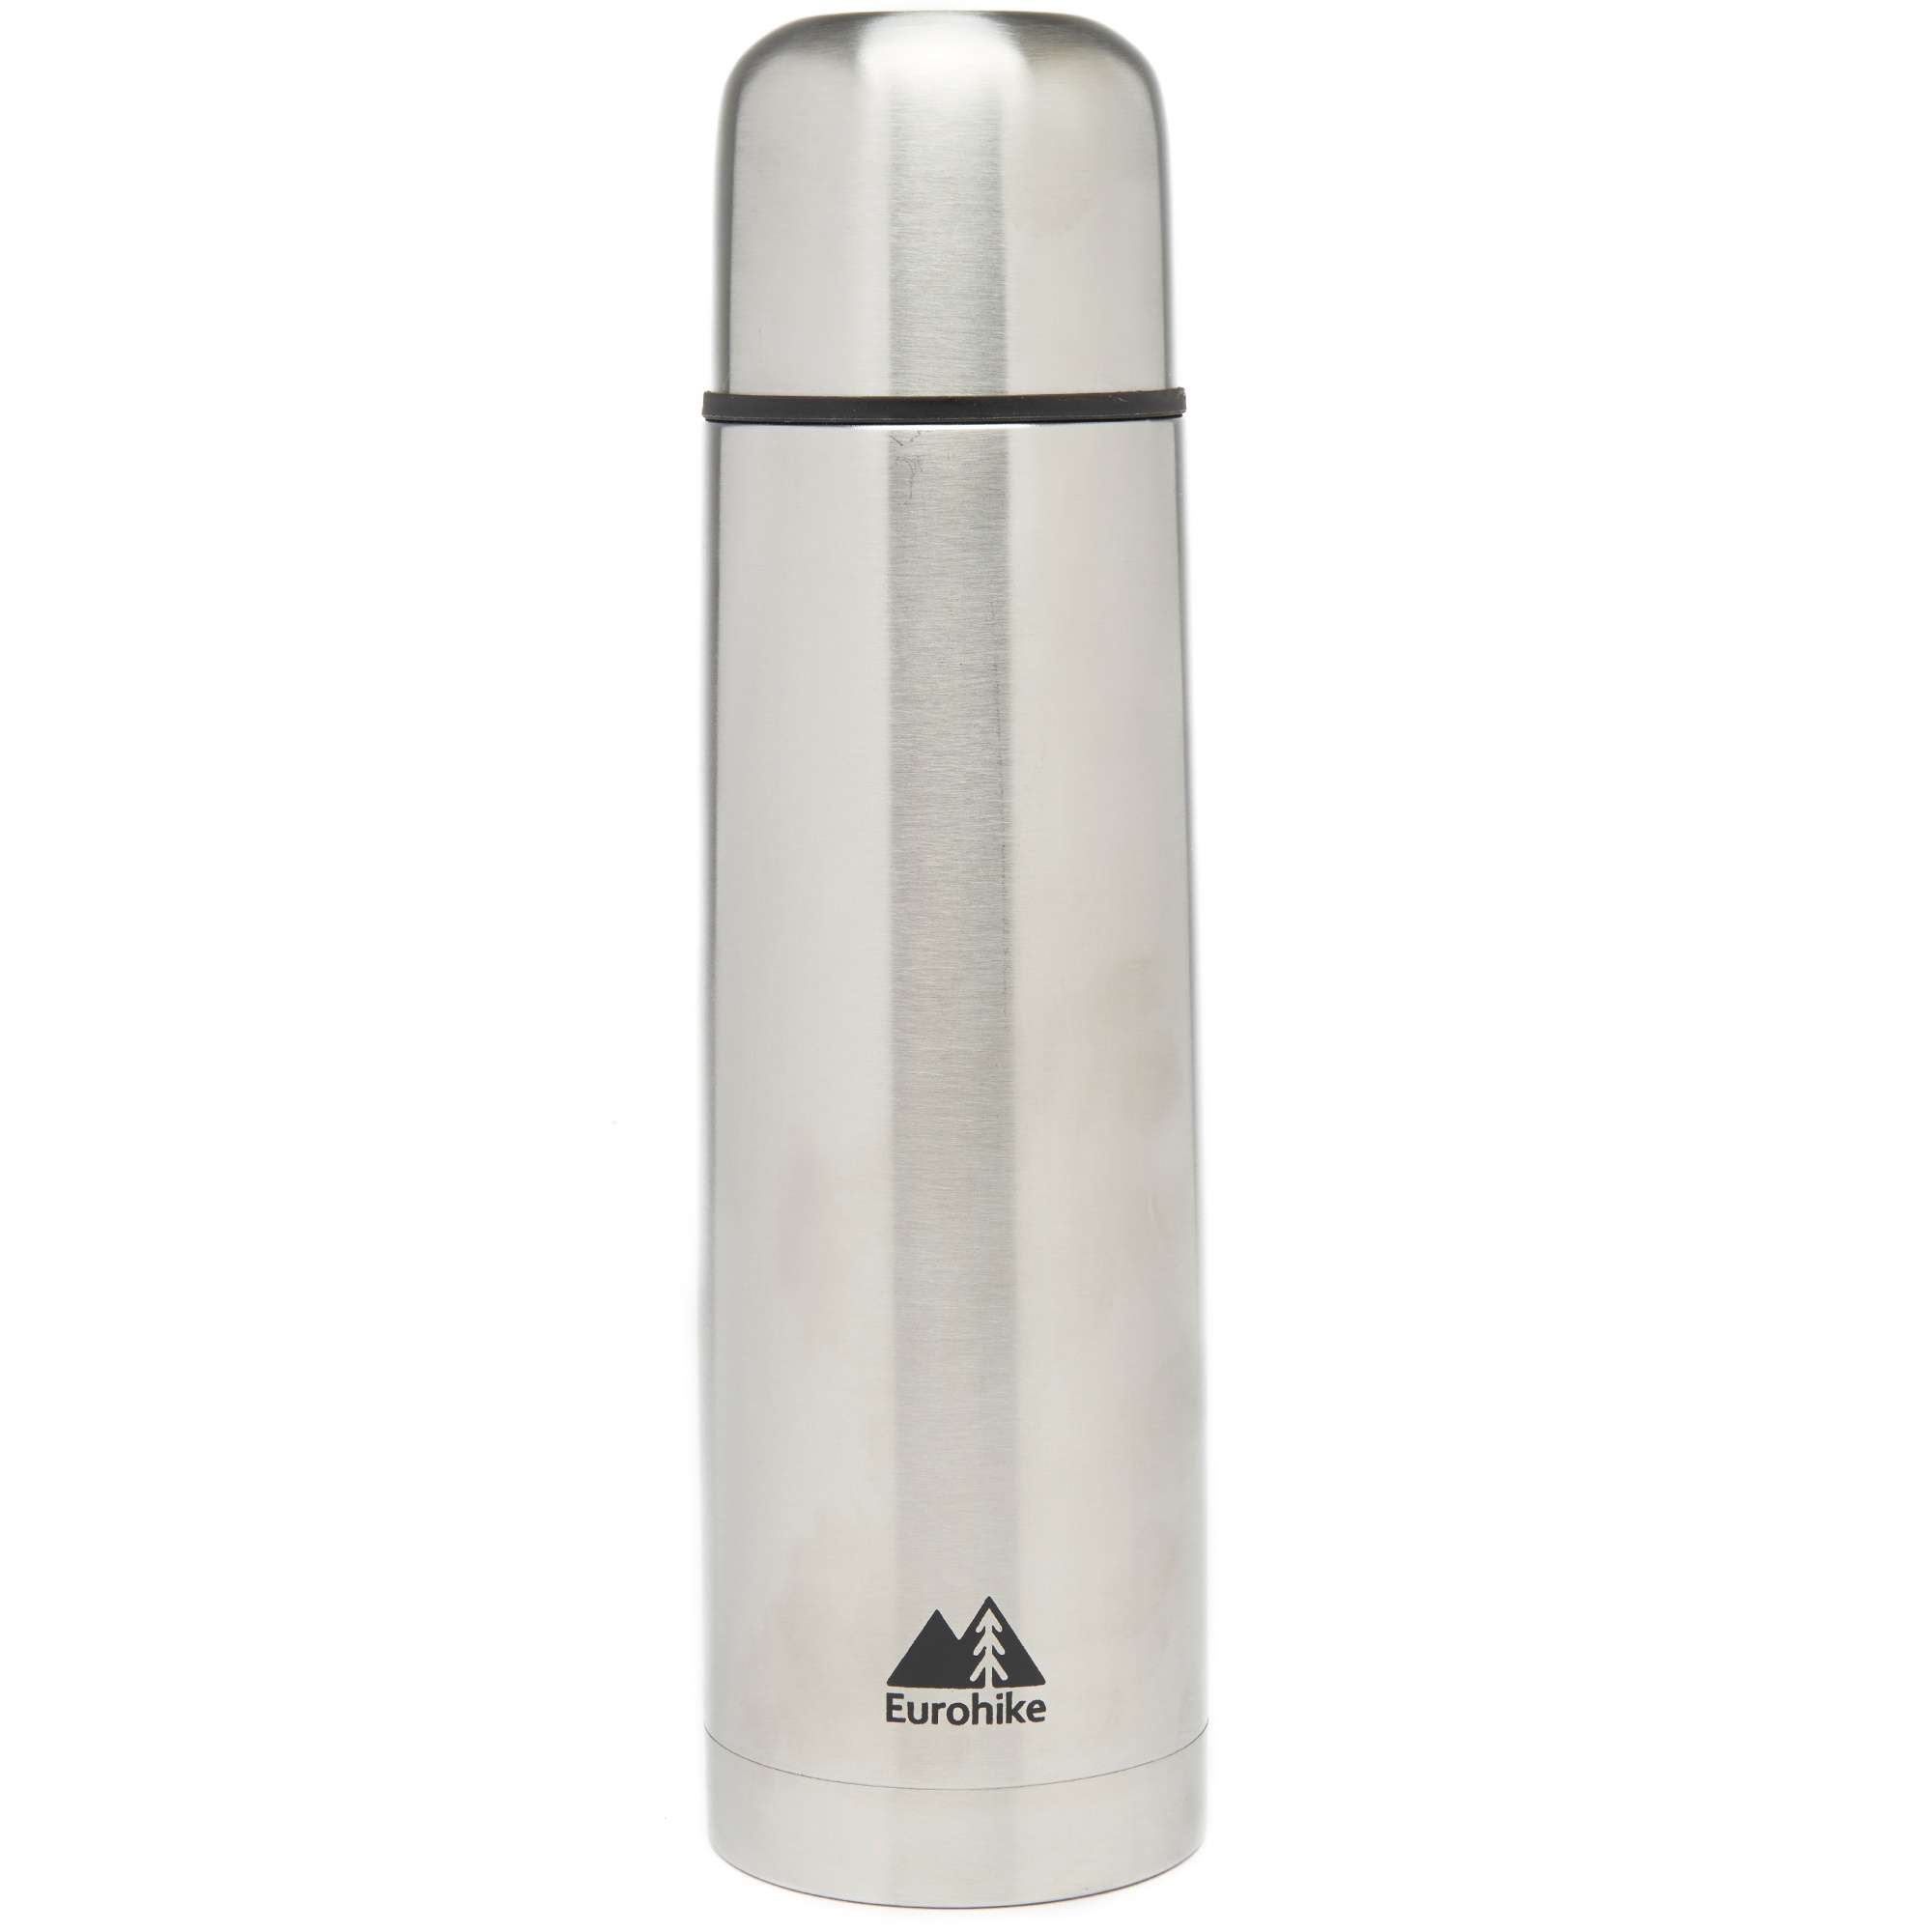 EUROHIKE Stainless Steel Flask 0.5L